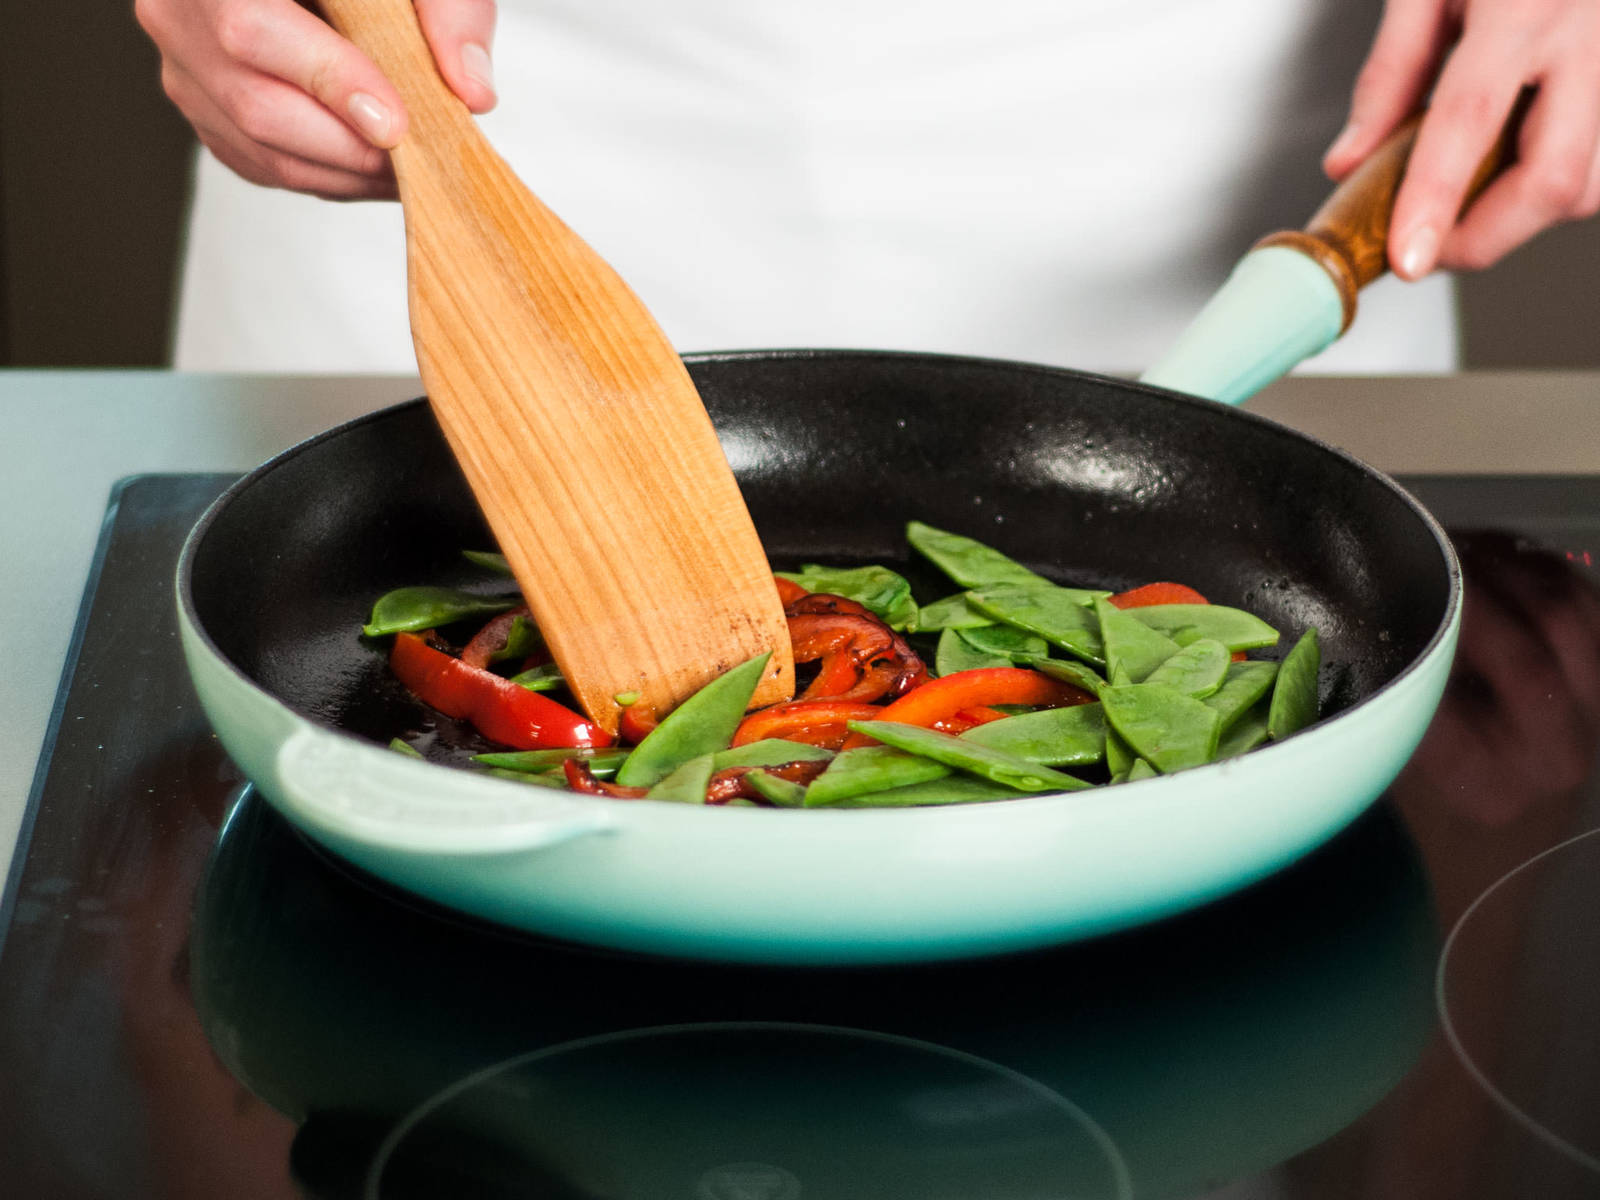 Heat some more vegetable oil in frying pan and sauté sugar snap peas and peppers in a pan over medium heat for approx. 5 – 7 min. until lightly roasted.  Season with salt and pepper.